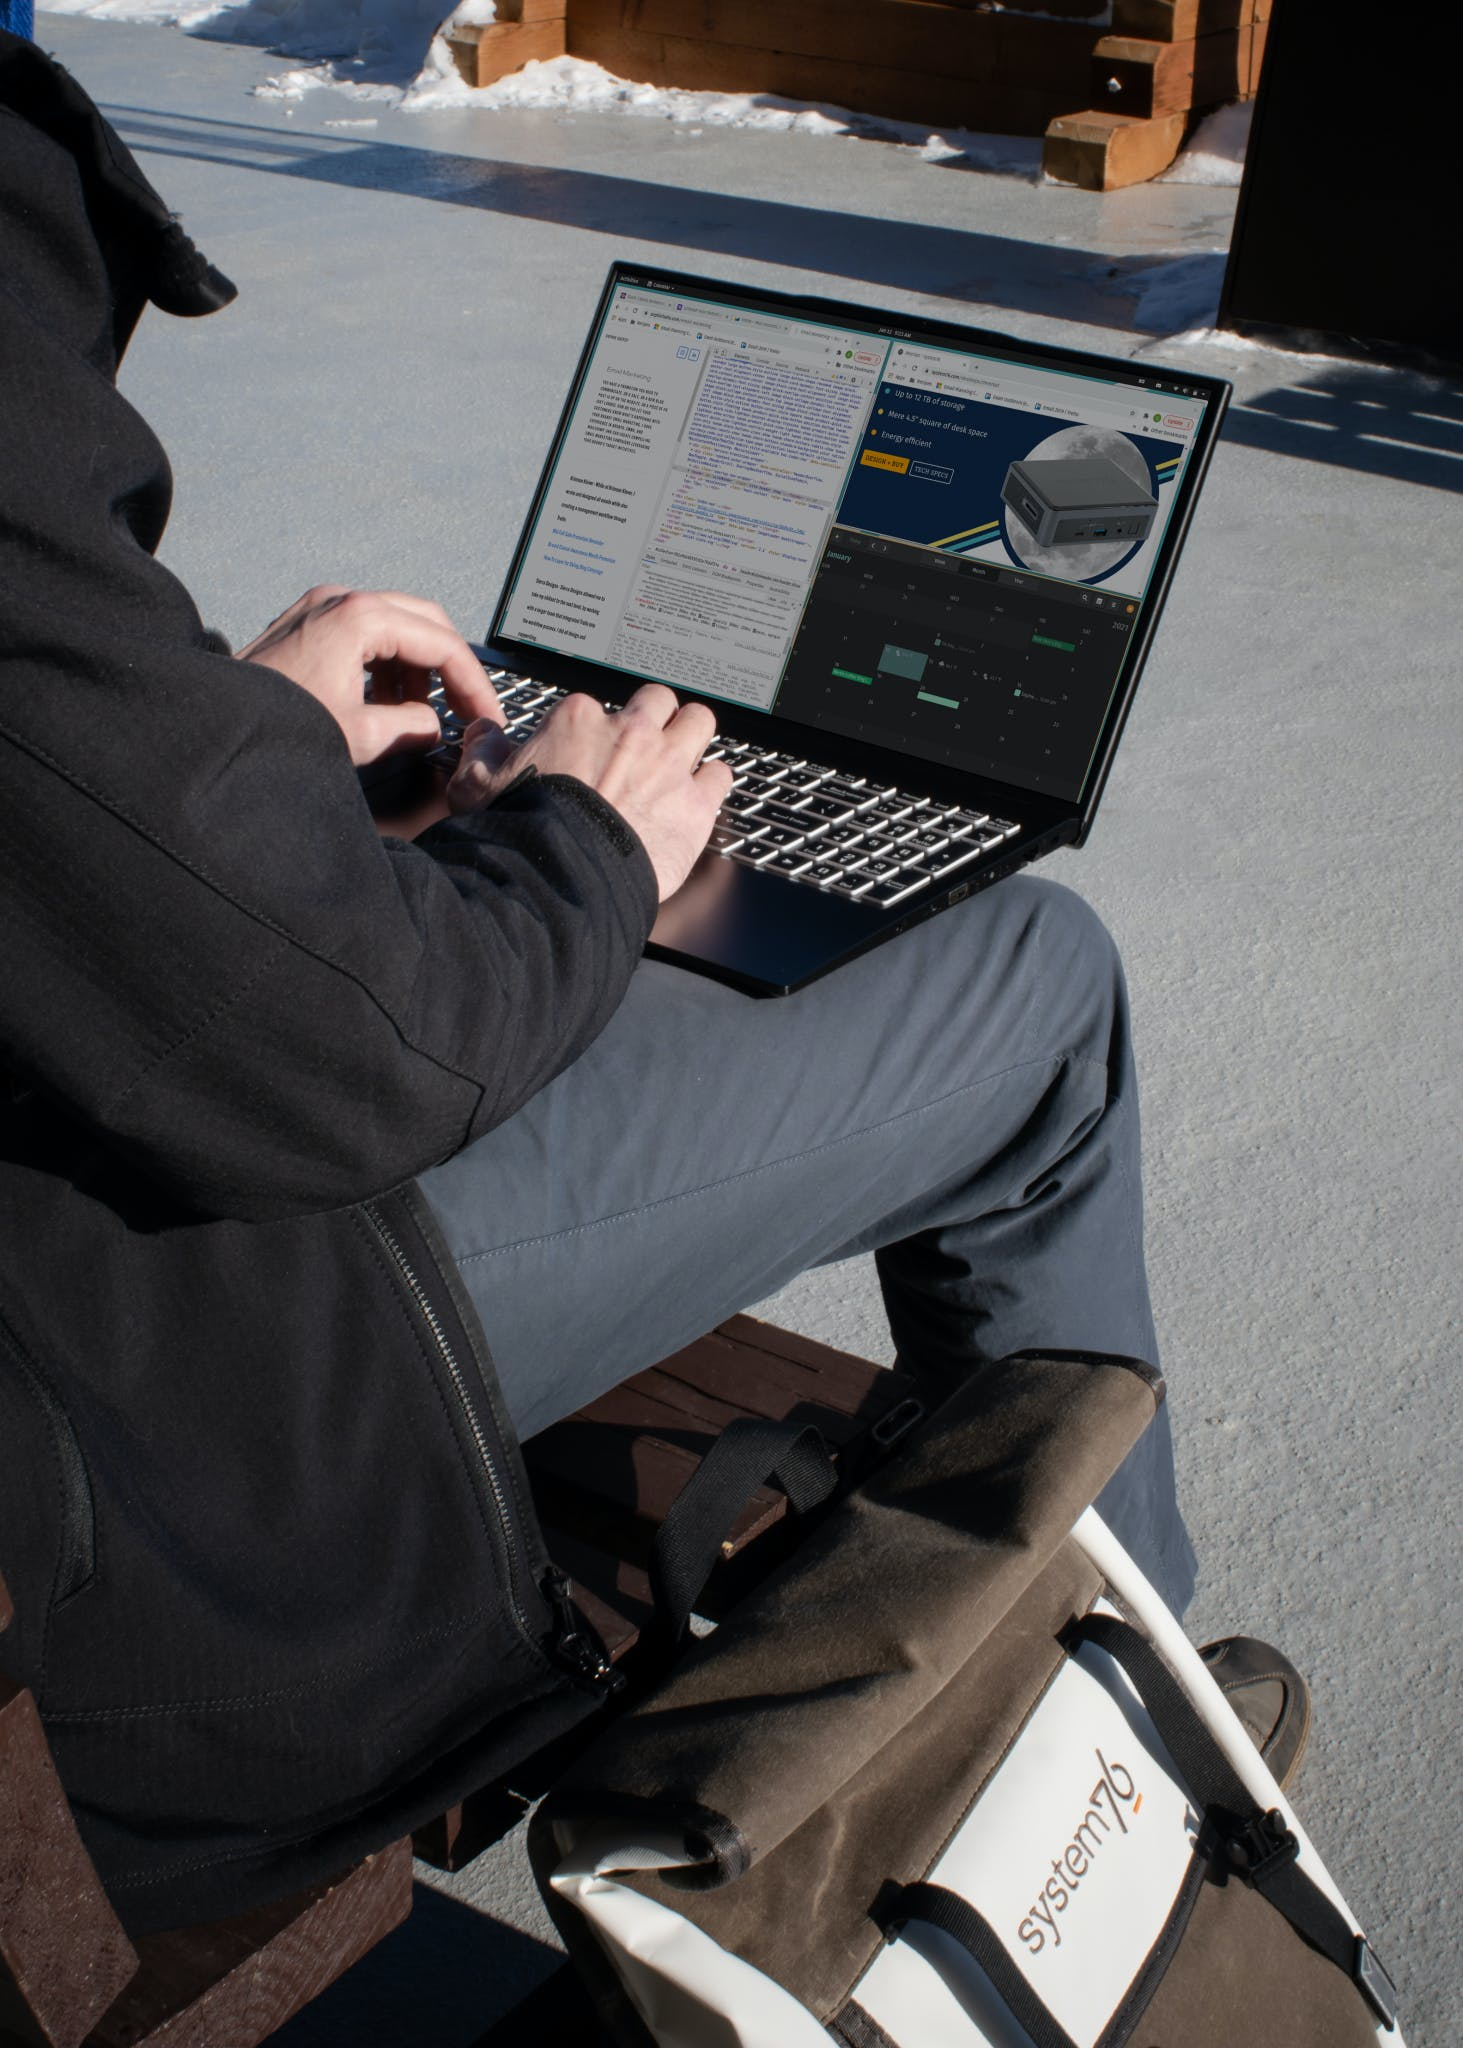 A person using the Darter Pro laptop on their lap, with a System76 backpack by their side.